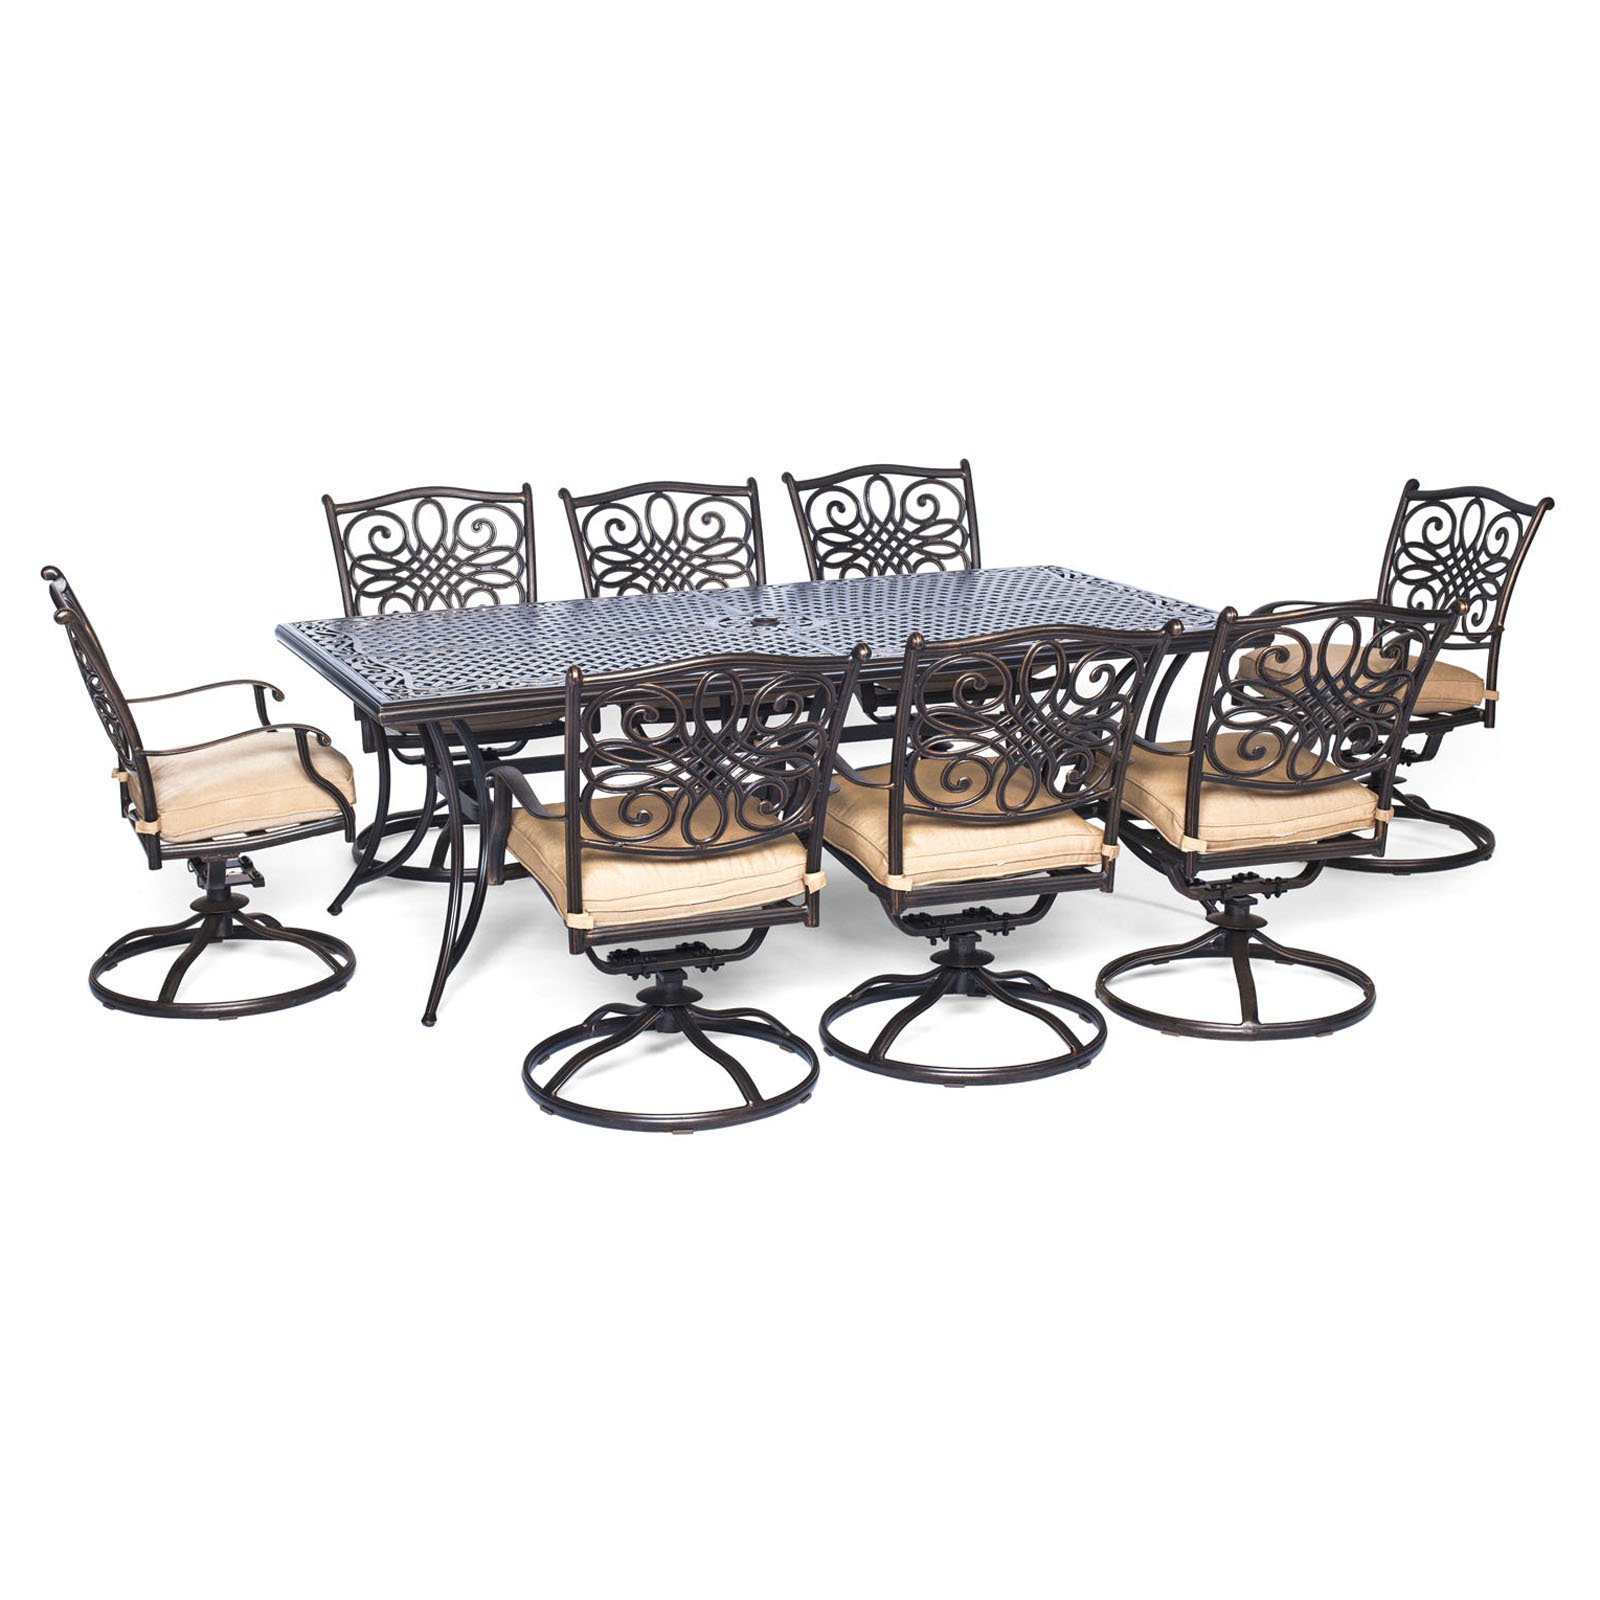 9-Piece Dining Set with Extra-Long Table and 8 Swivel Rockers, Natural Oat/Bronze